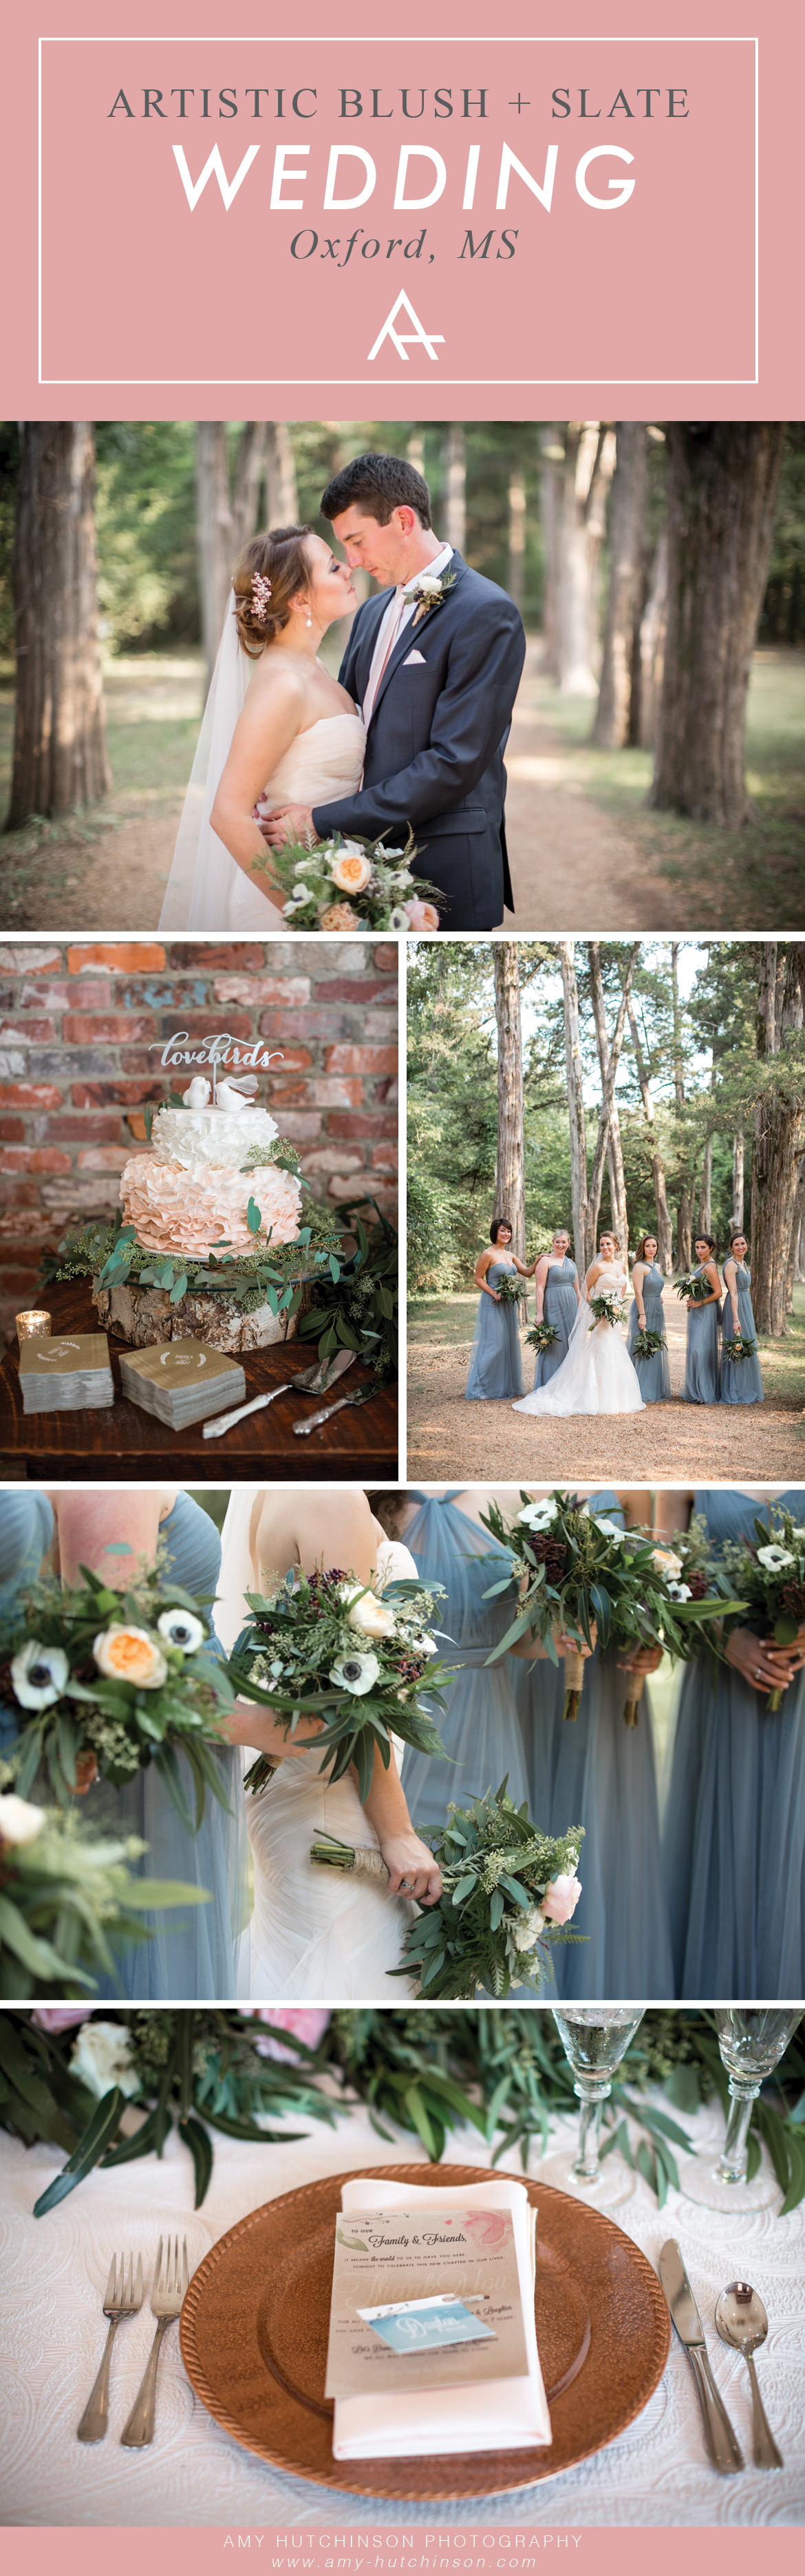 blush-slate-wedding-inspiration